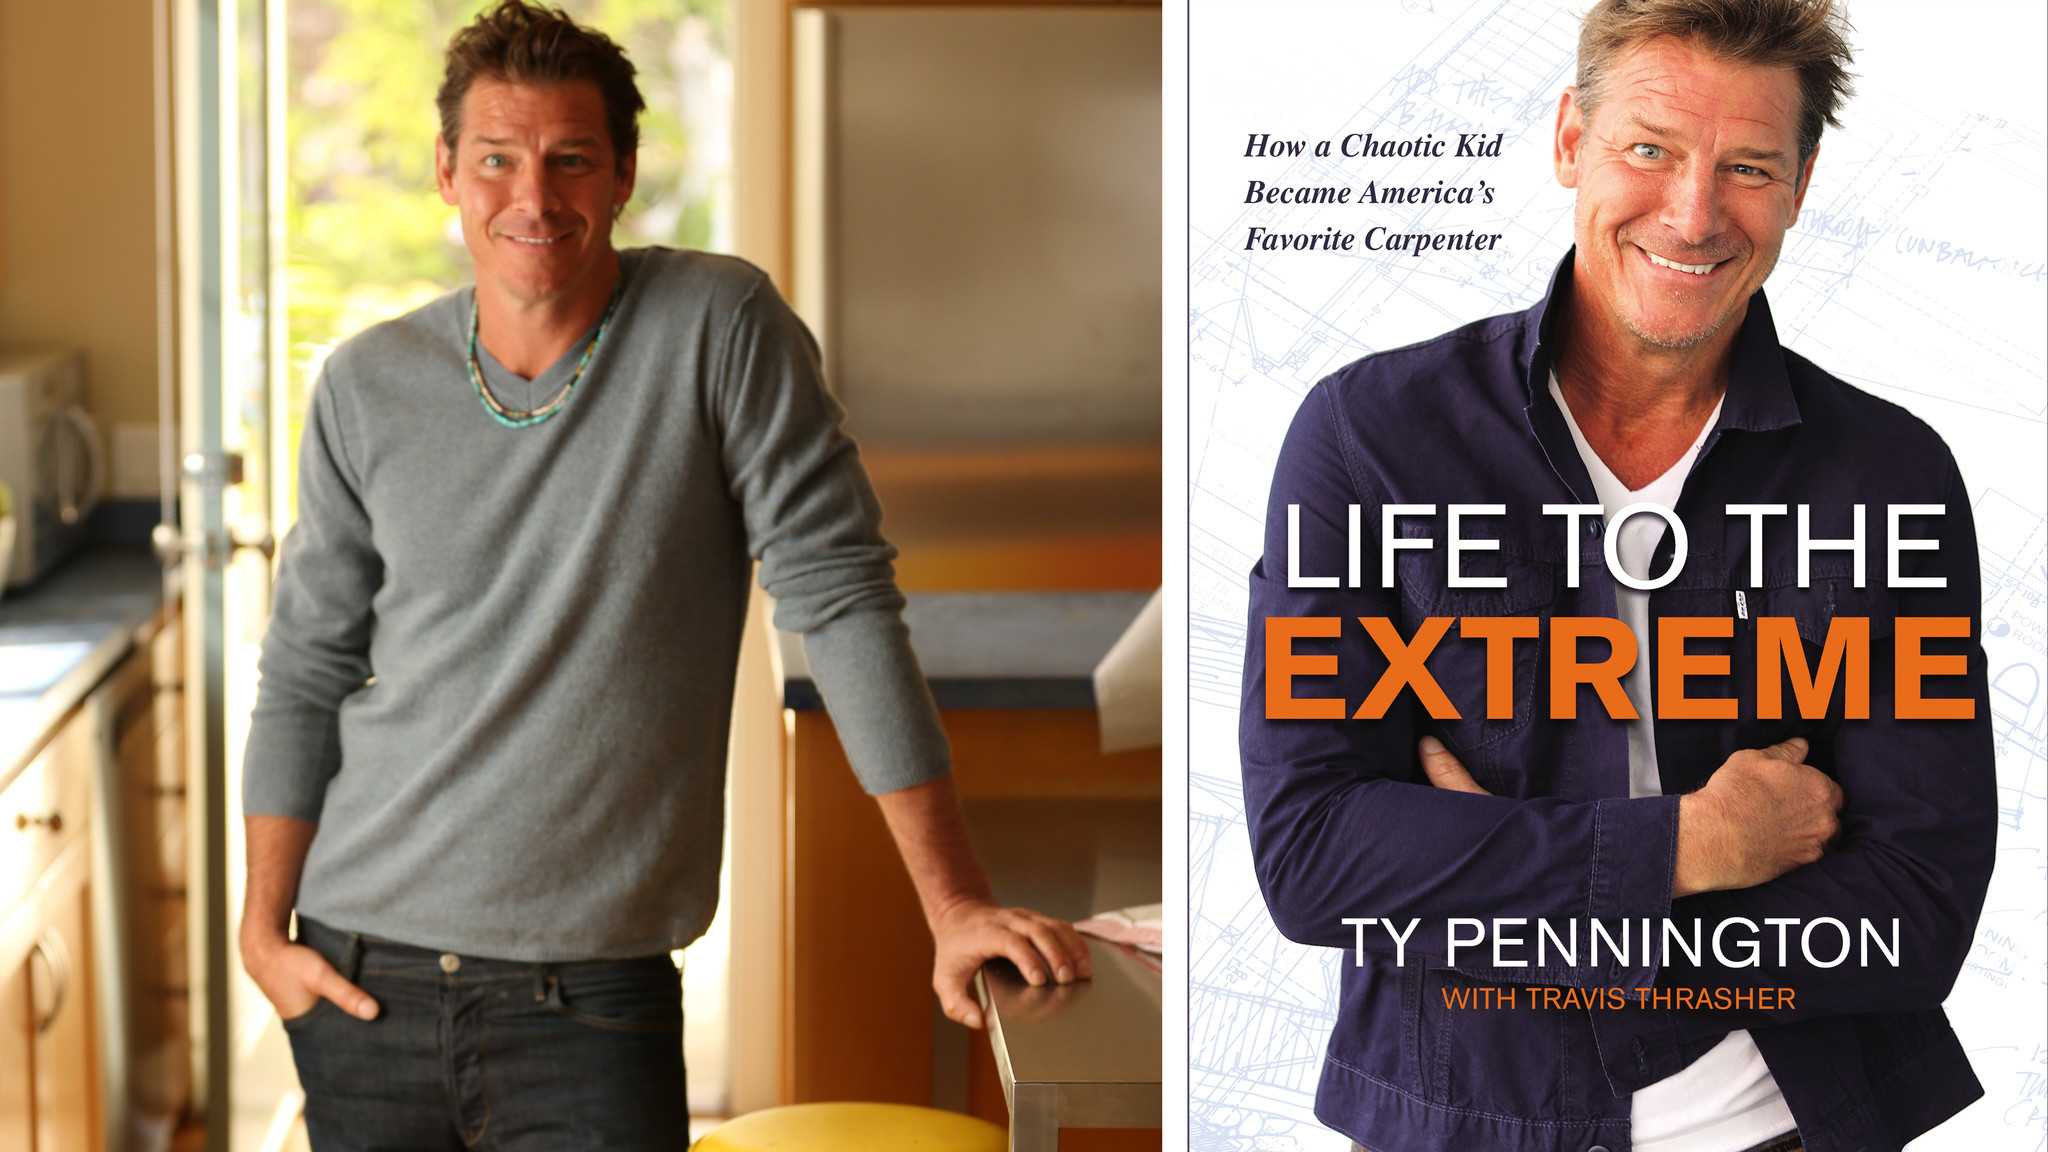 Ty Pennington talks 'Trading Spaces' reboot, living with ADHD and writing a book in 7 days